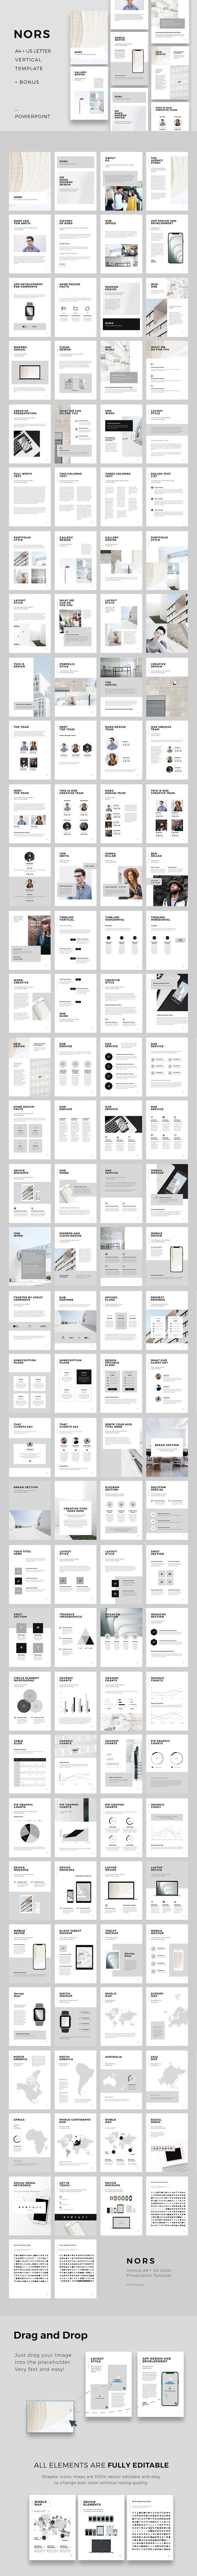 NORS Vertical Powerpoint + 20 Photos by PixaSquare on @creativemarket Professional creative design Presentation Template Slides. Creative, modern, clean, minimalist, trendy, marketing Promotion Promo Posts for Business, Proposal, Marketing, Plan, Agency, Startups, Portfolio Design Layout. Vertical A4 + US Letter Printable Ready to Print Version